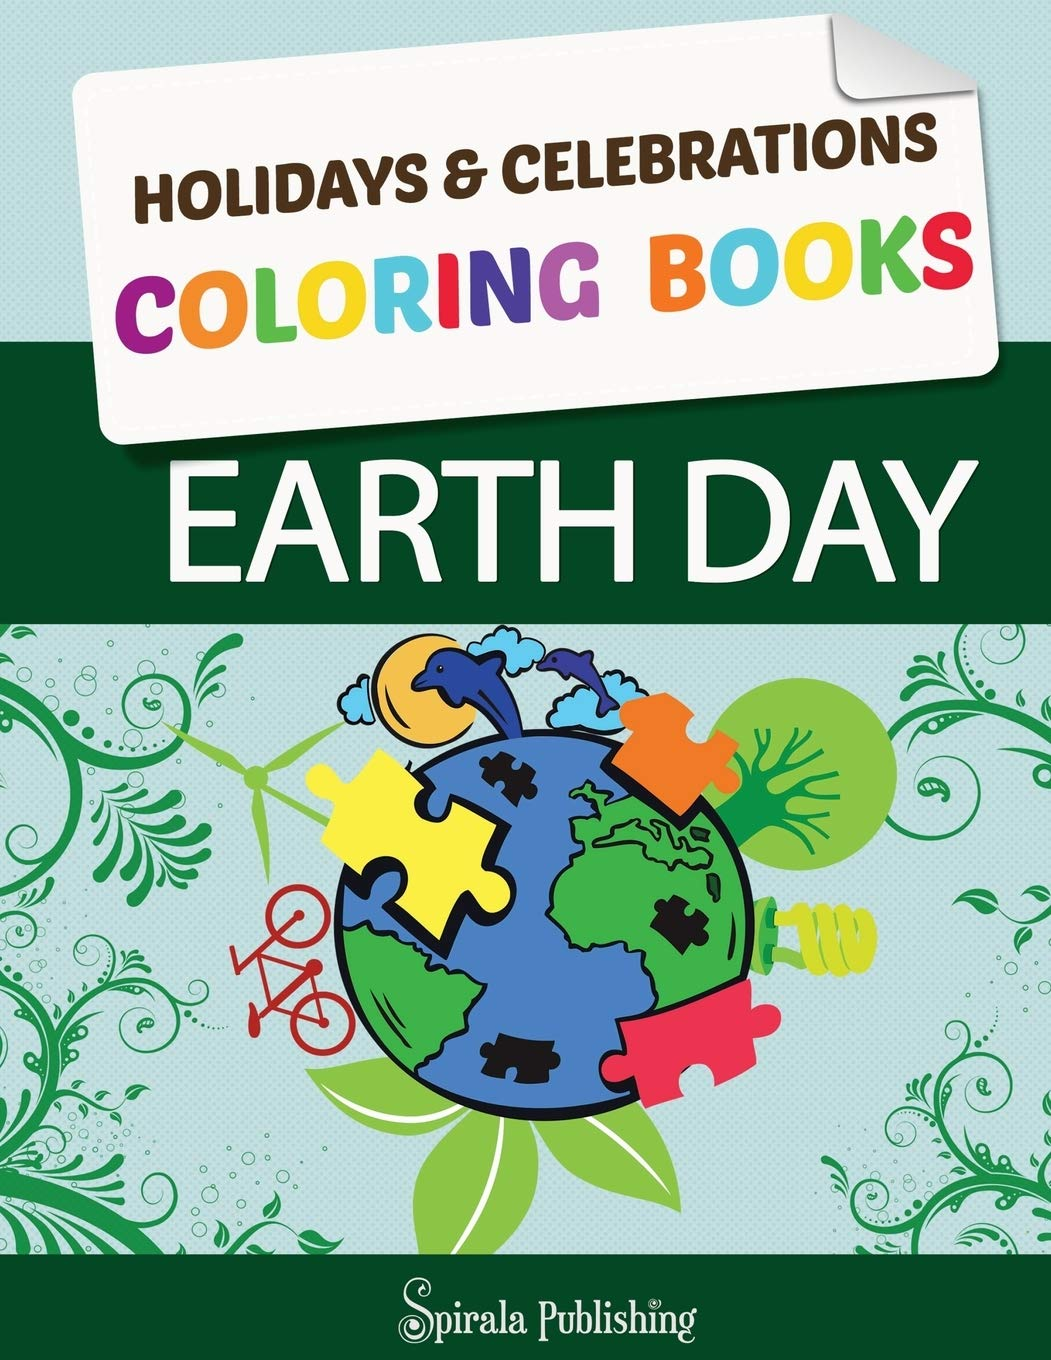 Amazon Com Earth Day Coloring Book Earth Day Coloring Pages Holidays Celebrations Coloring Books 9781630225360 Holidays Celebrations Coloring Publishing Spirala Books